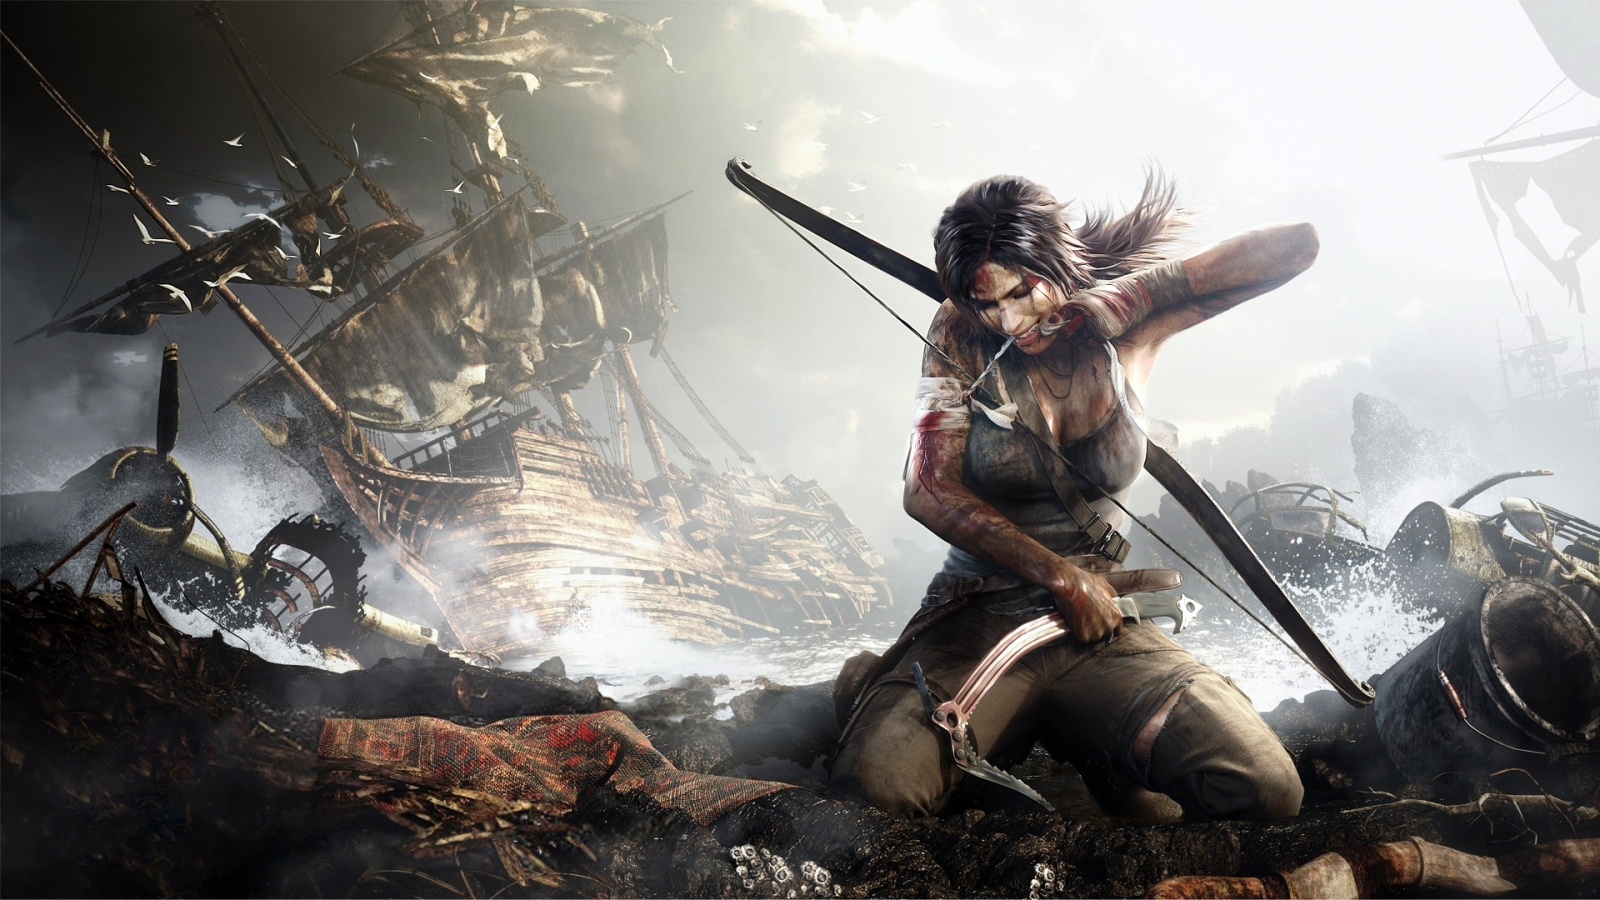 Alicia Vikander Reveals New Info On Upcoming Tomb Raider Film 2013 tomb raider game wallpaper for 1600x900 hdtv 9 502 1